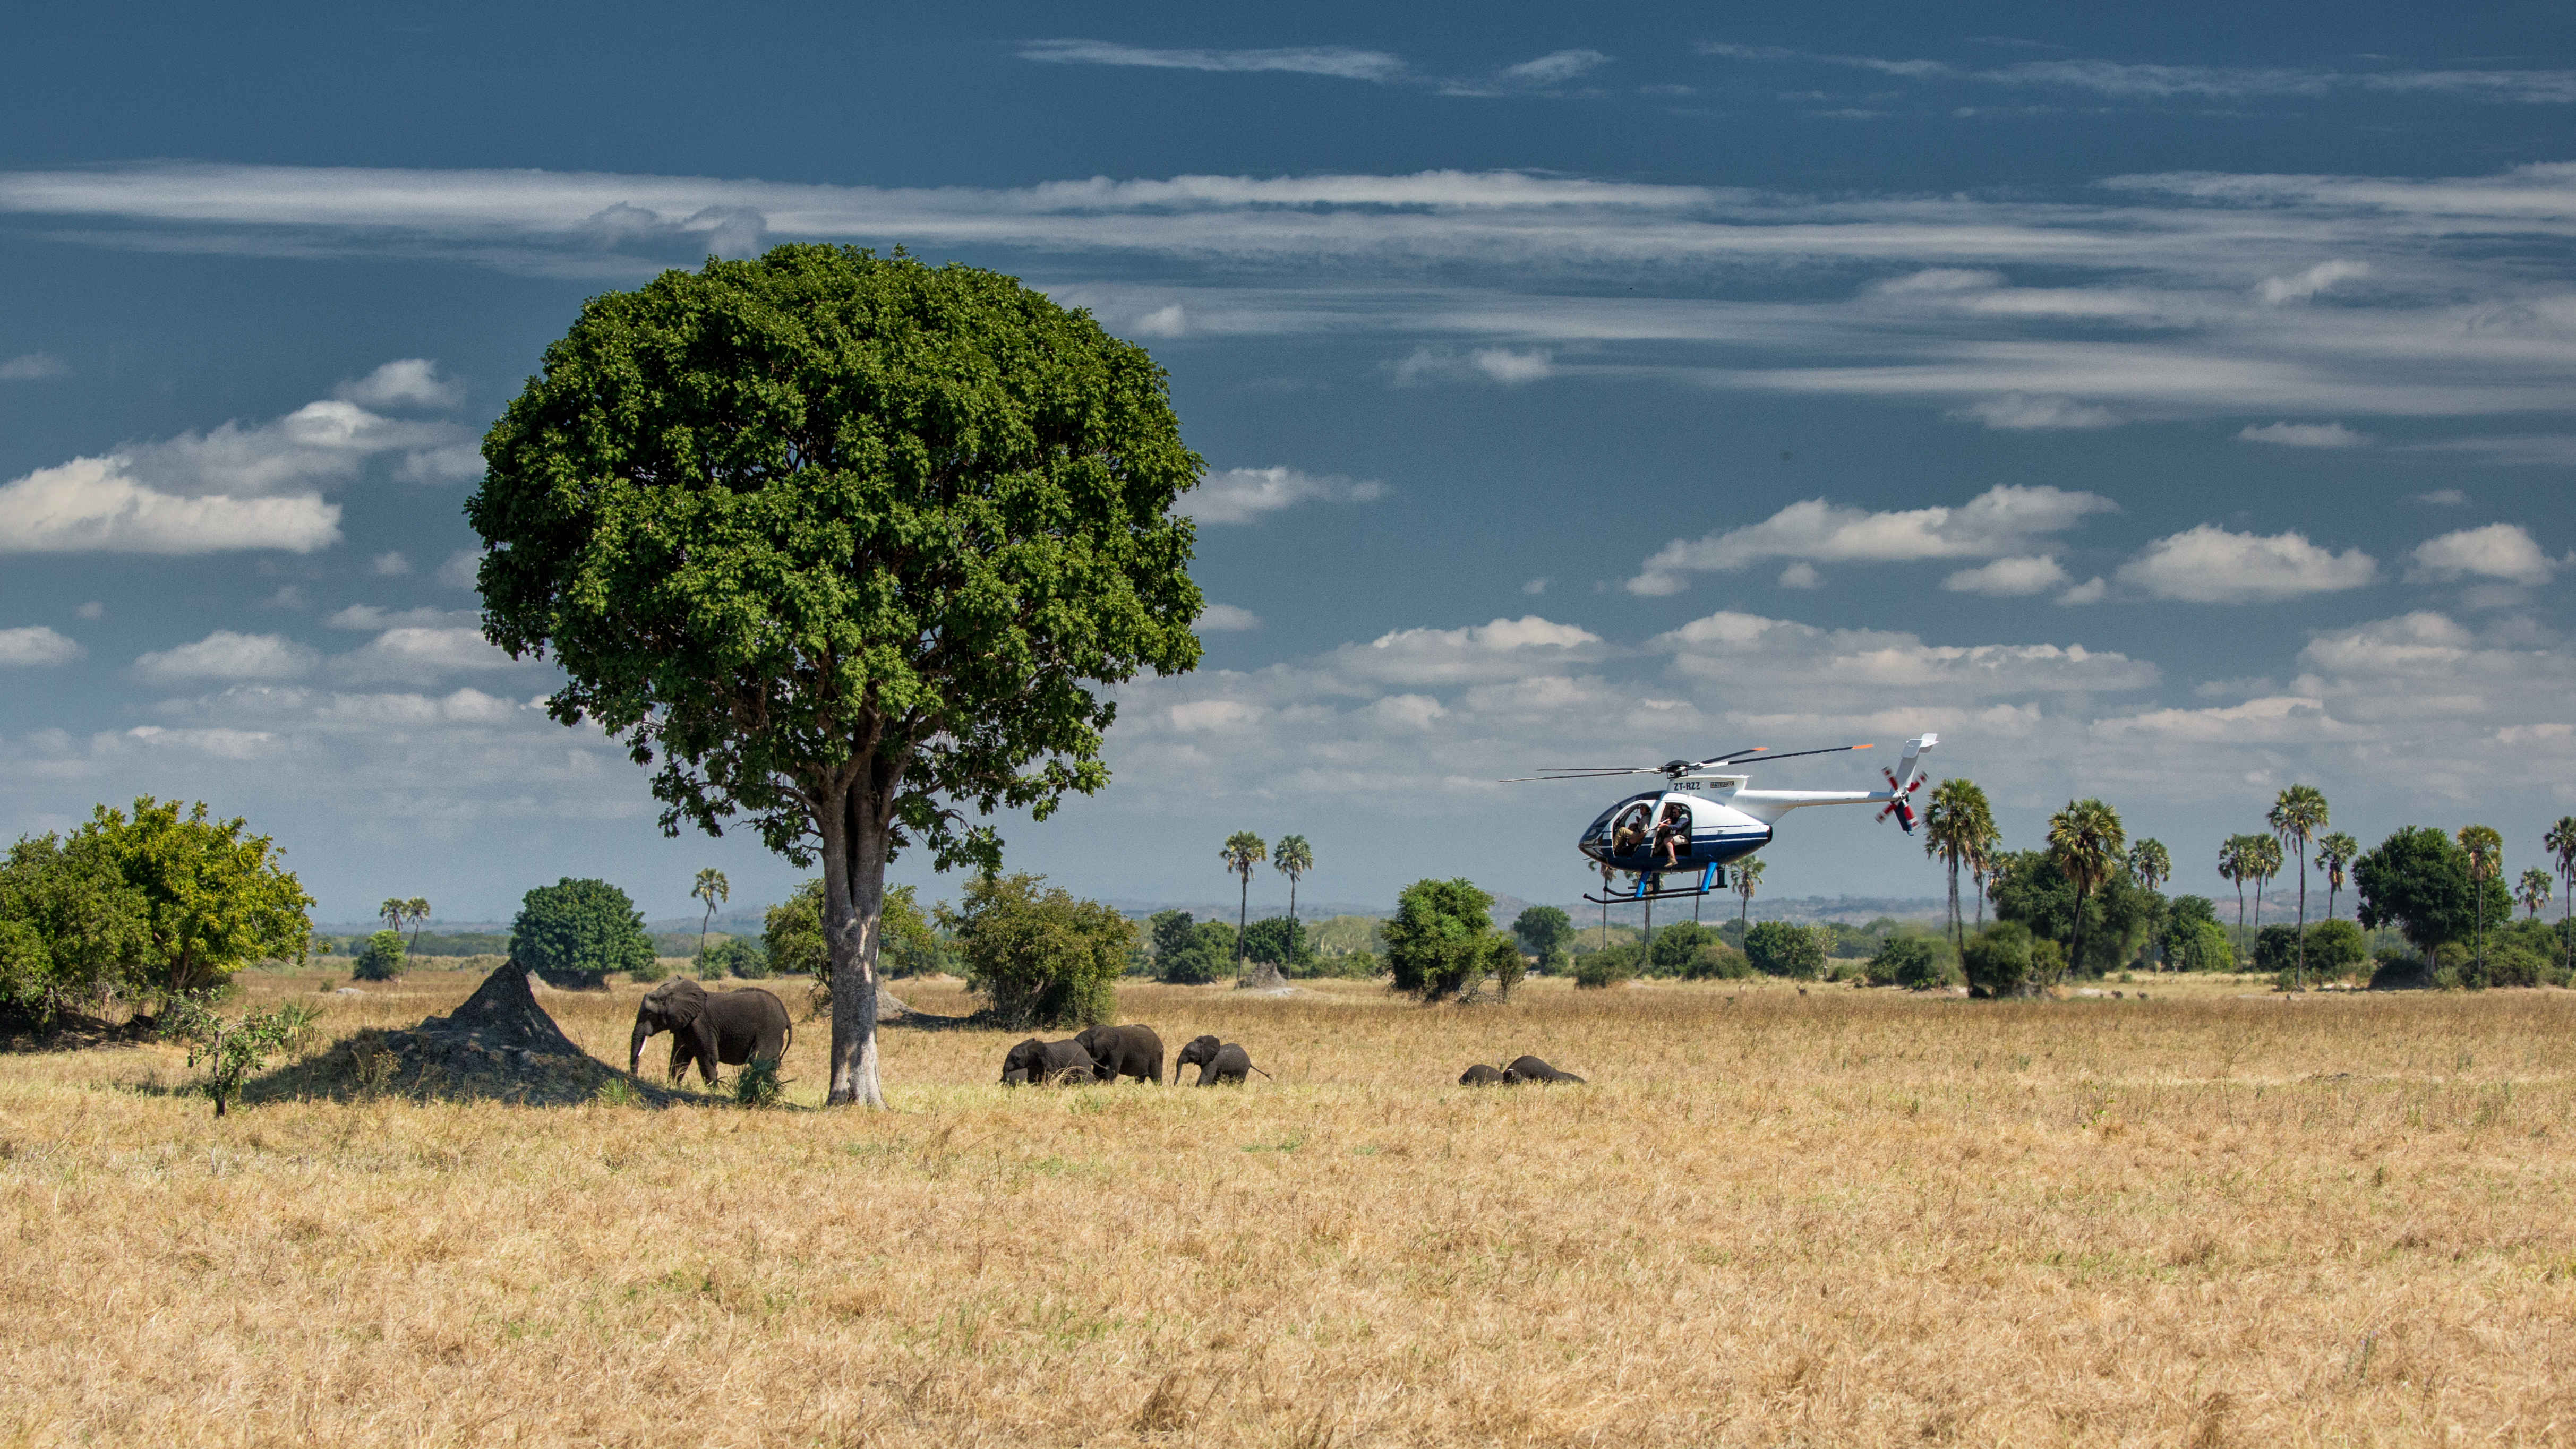 A helicopter lands in a park near some elephants in Malawi.